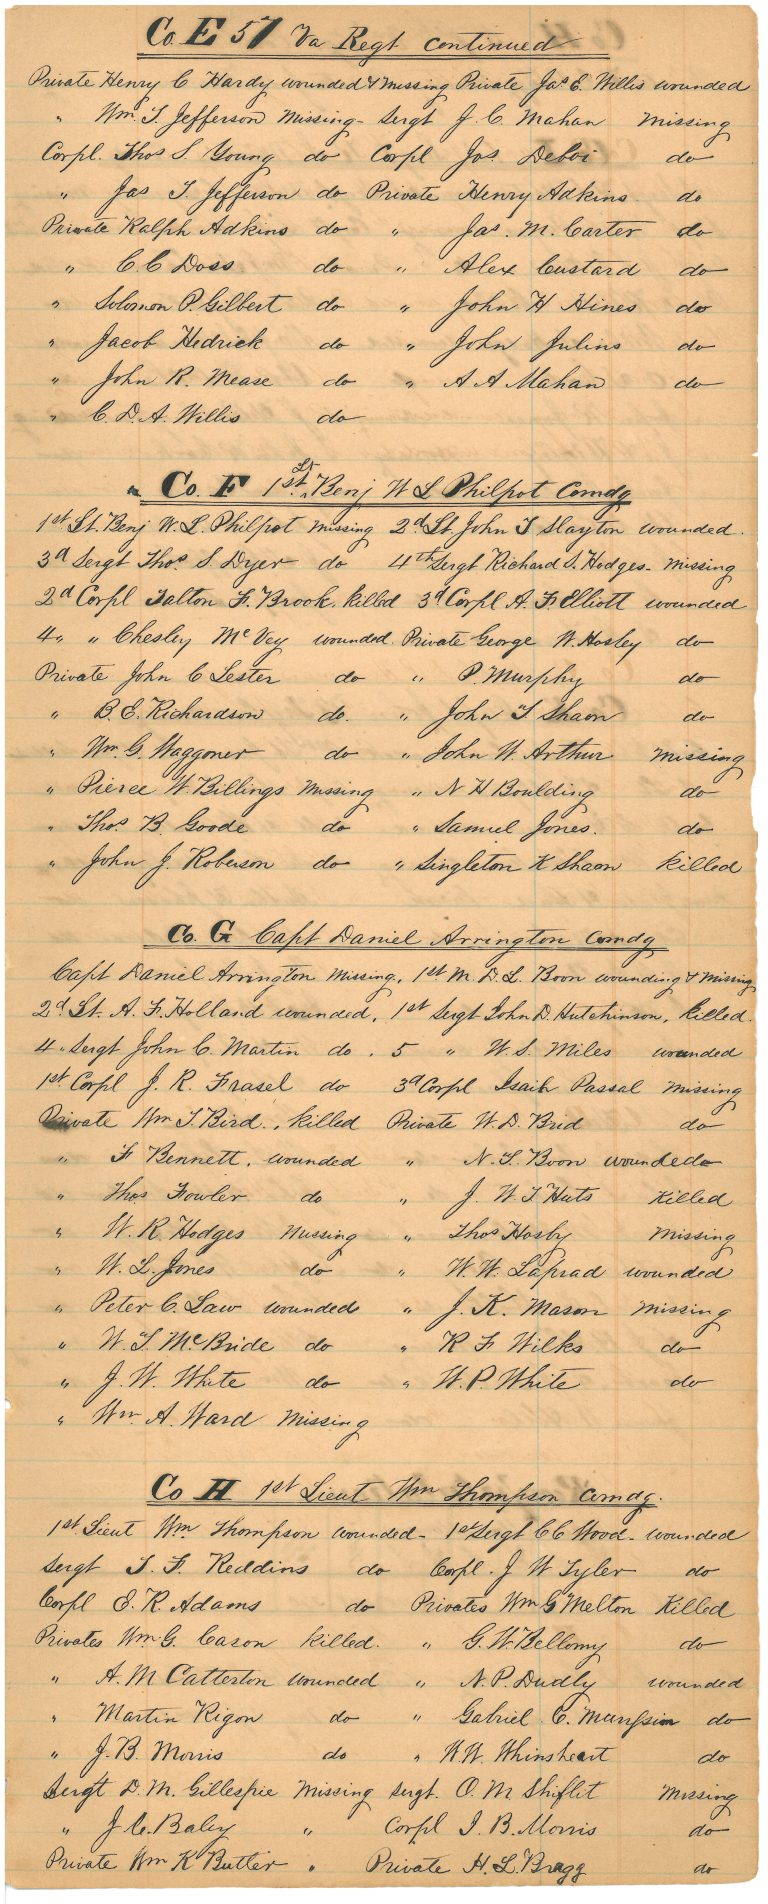 Partial List of Casualties at Pickett's Charge